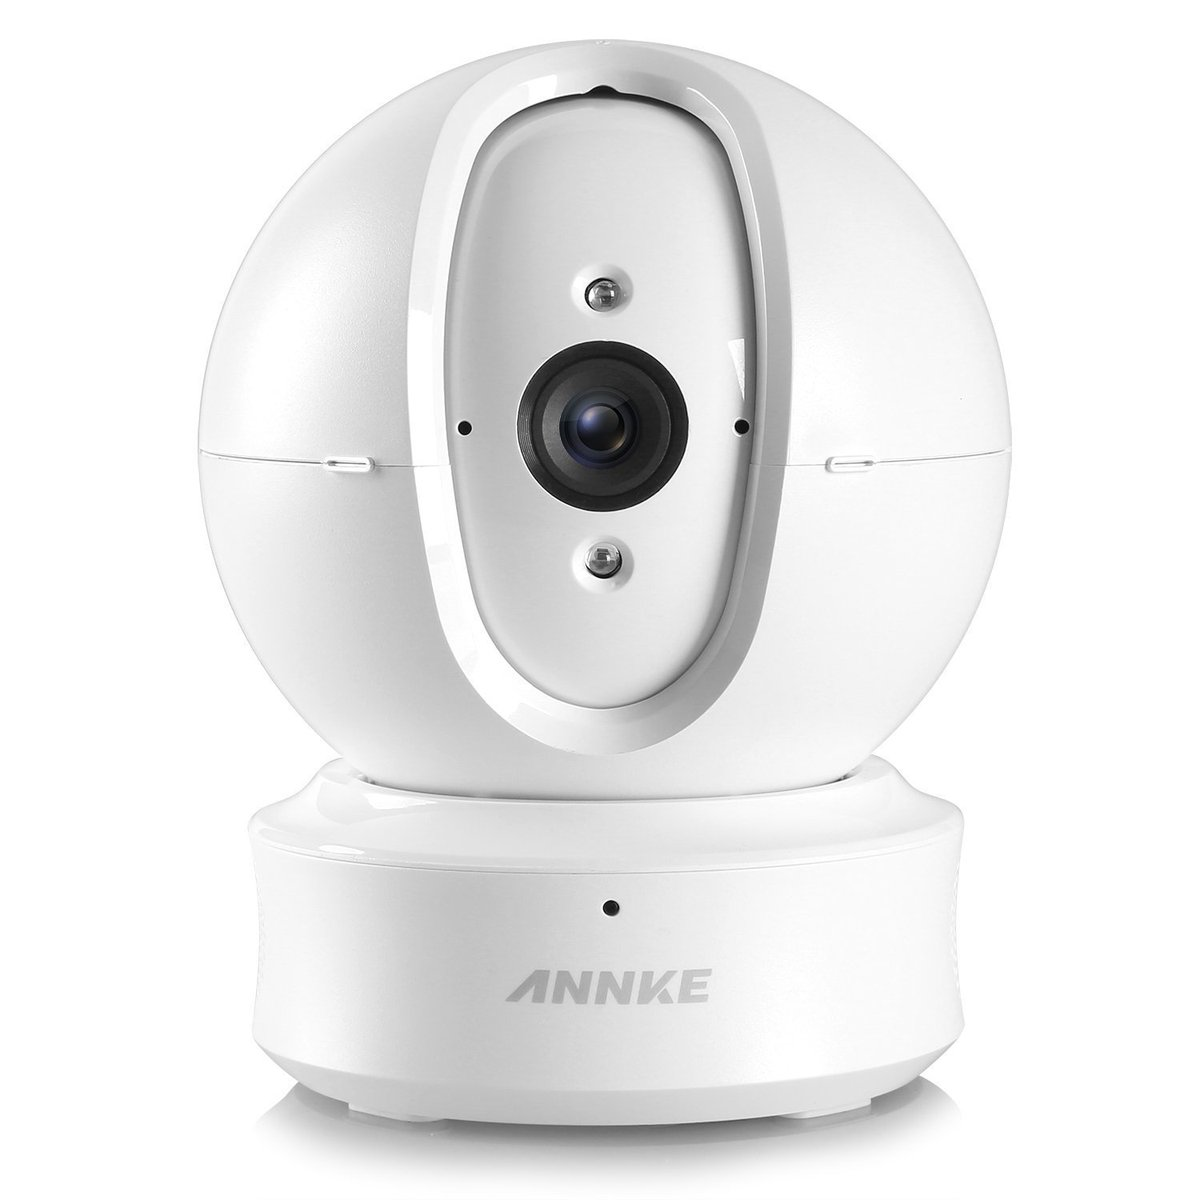 Annke Security on Twitter: